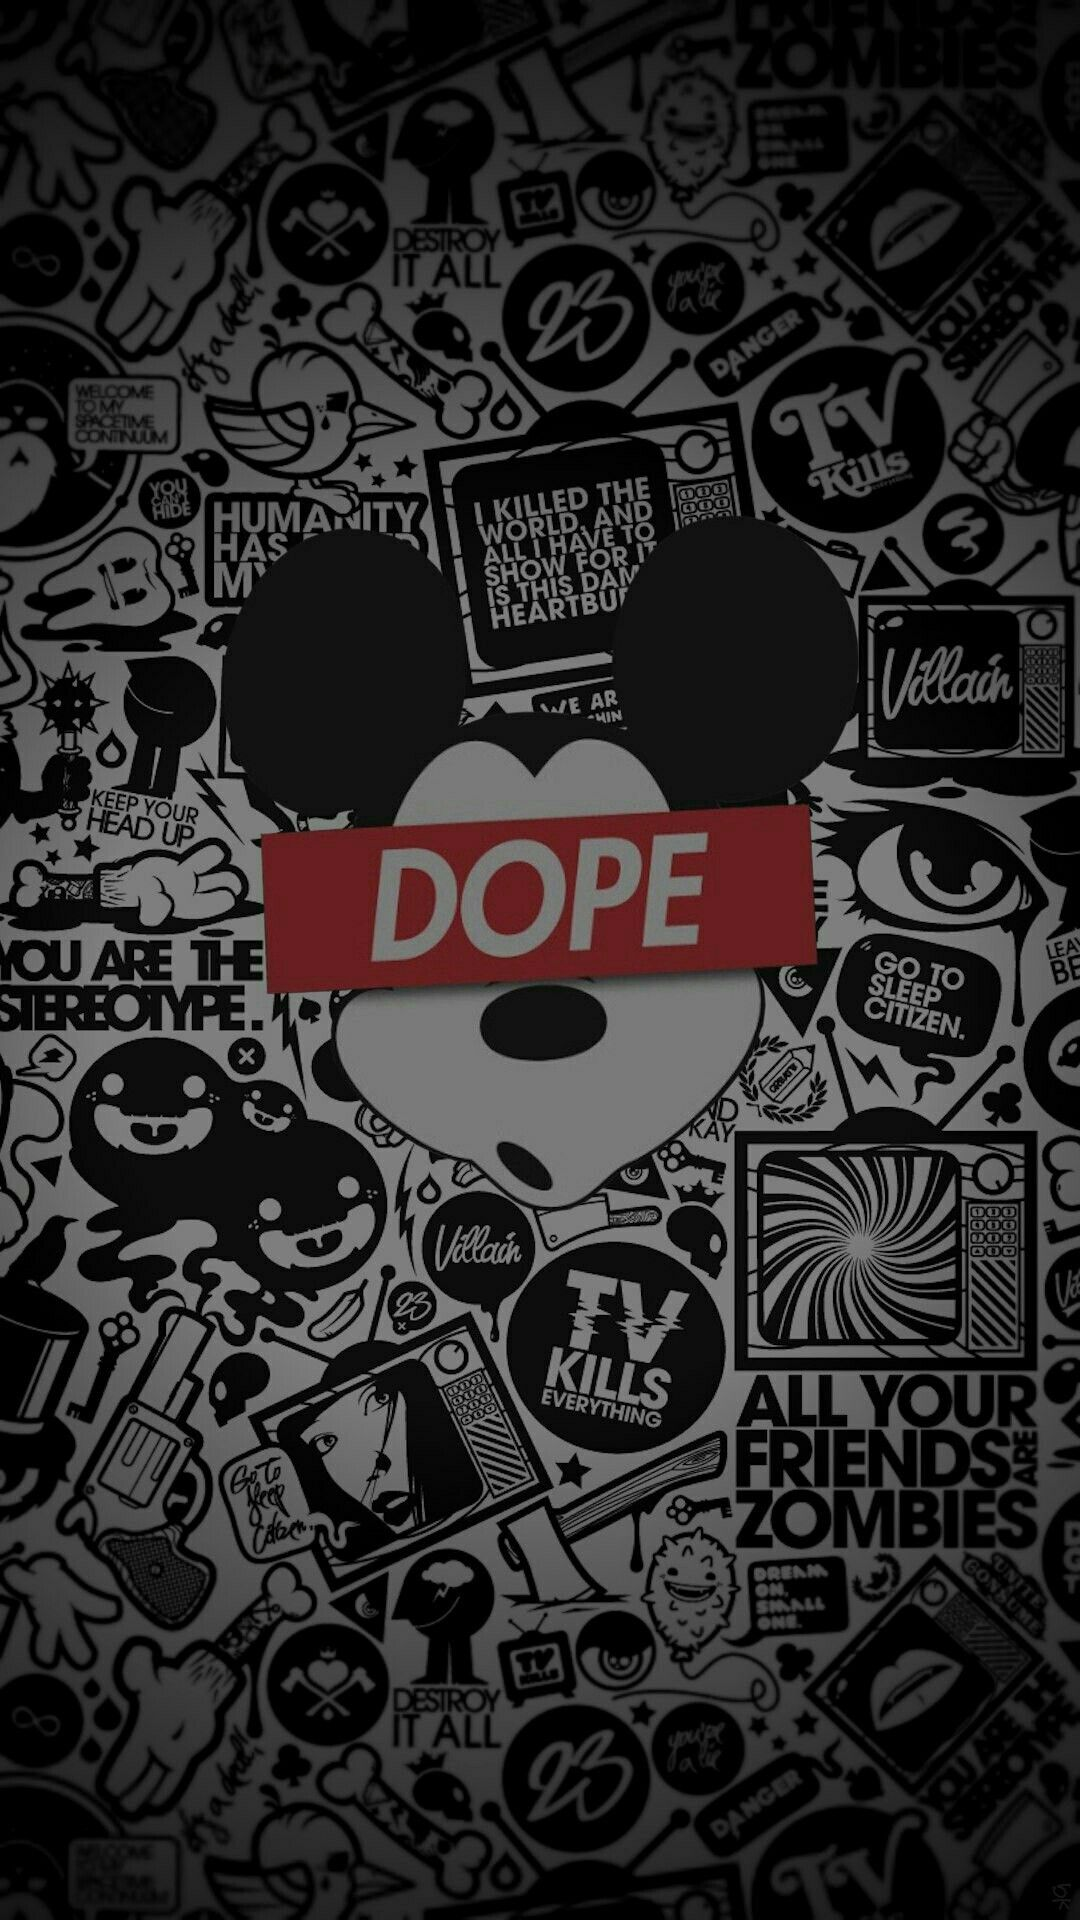 Микки микимаус маус mouse dope wallpaper wallpapers galery ...